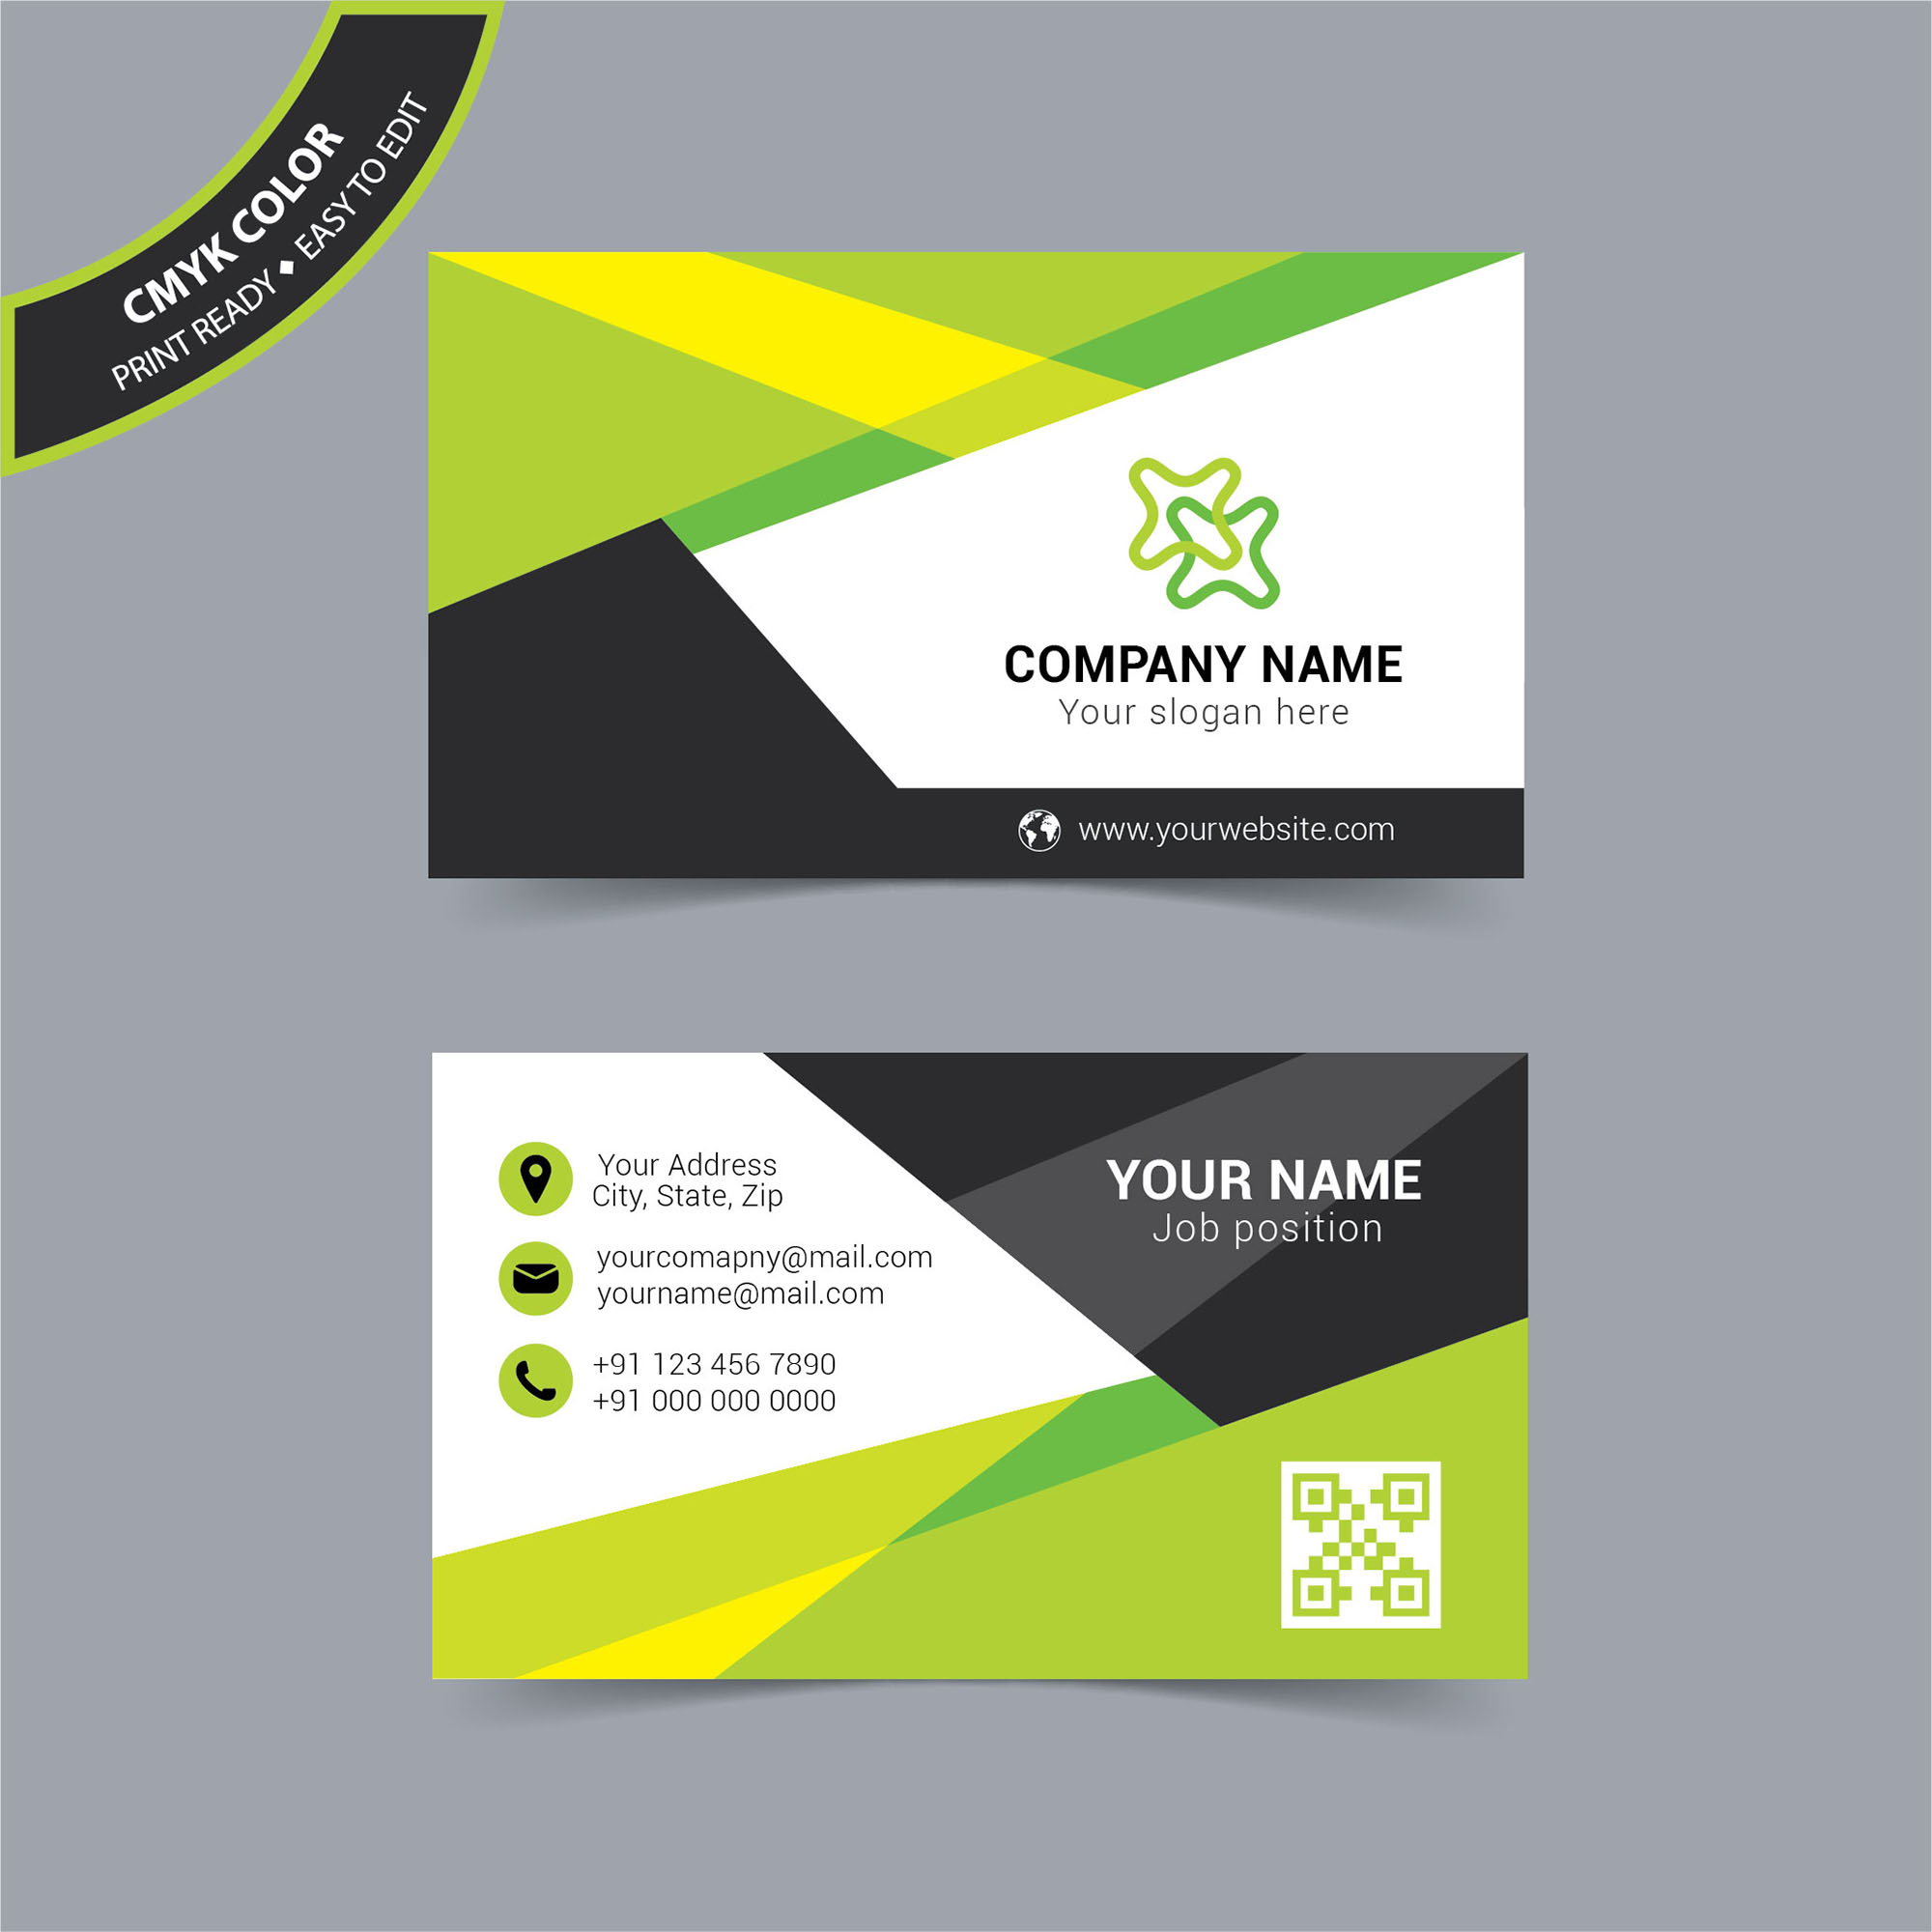 Modern colorful business card design free download wisxi business card business cards business card design business card template design templates reheart Choice Image